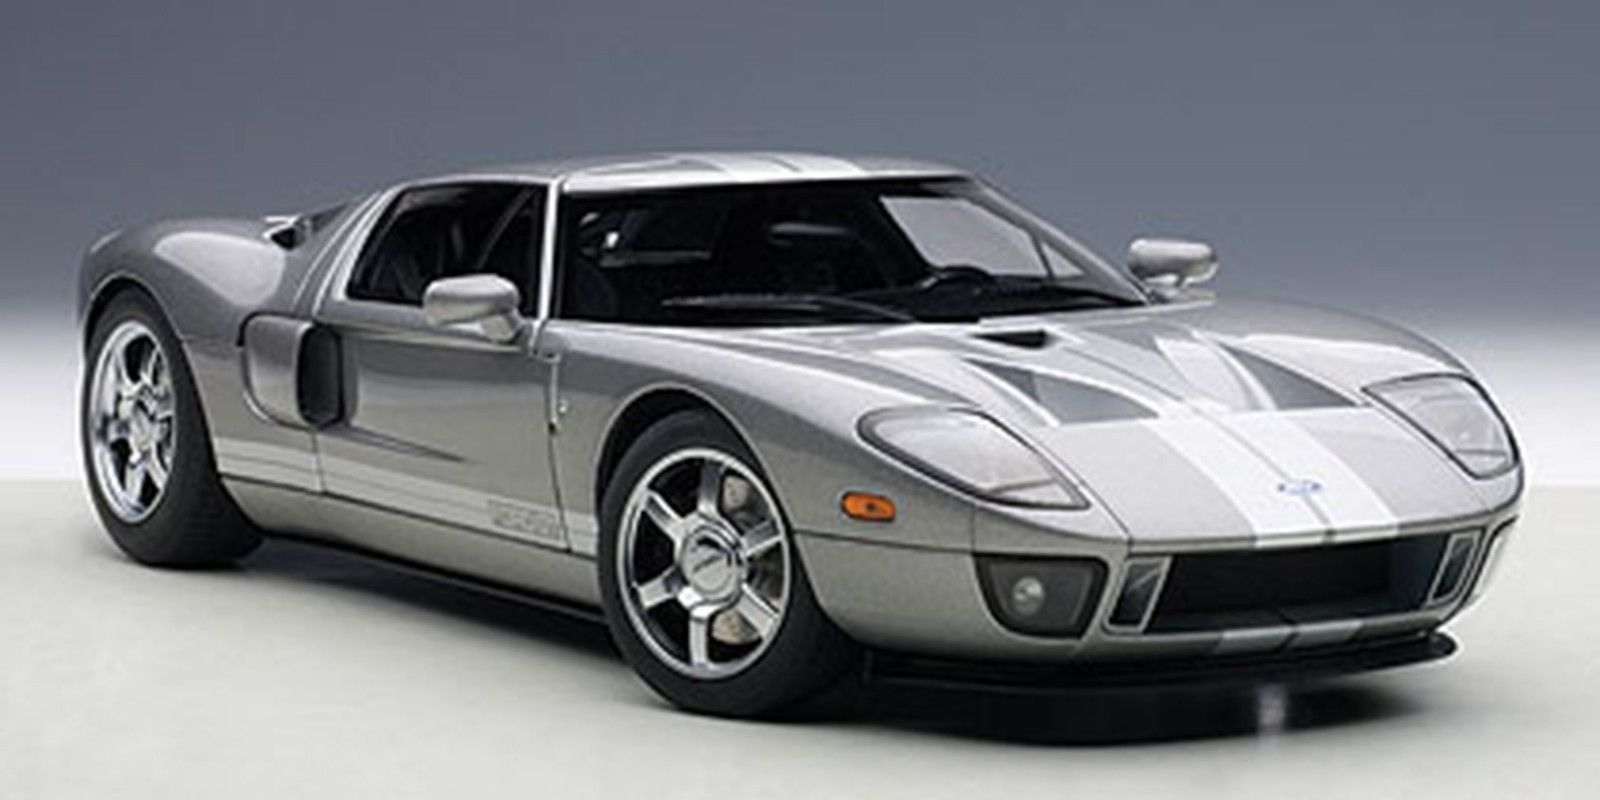 Autoart FORD GT 2004 TITANIUM GREY/SILVER STRIPES in 1/18 Scale[USA直輸入][大人のミニカー][プレゼントにおすすめ][デイブレイク]